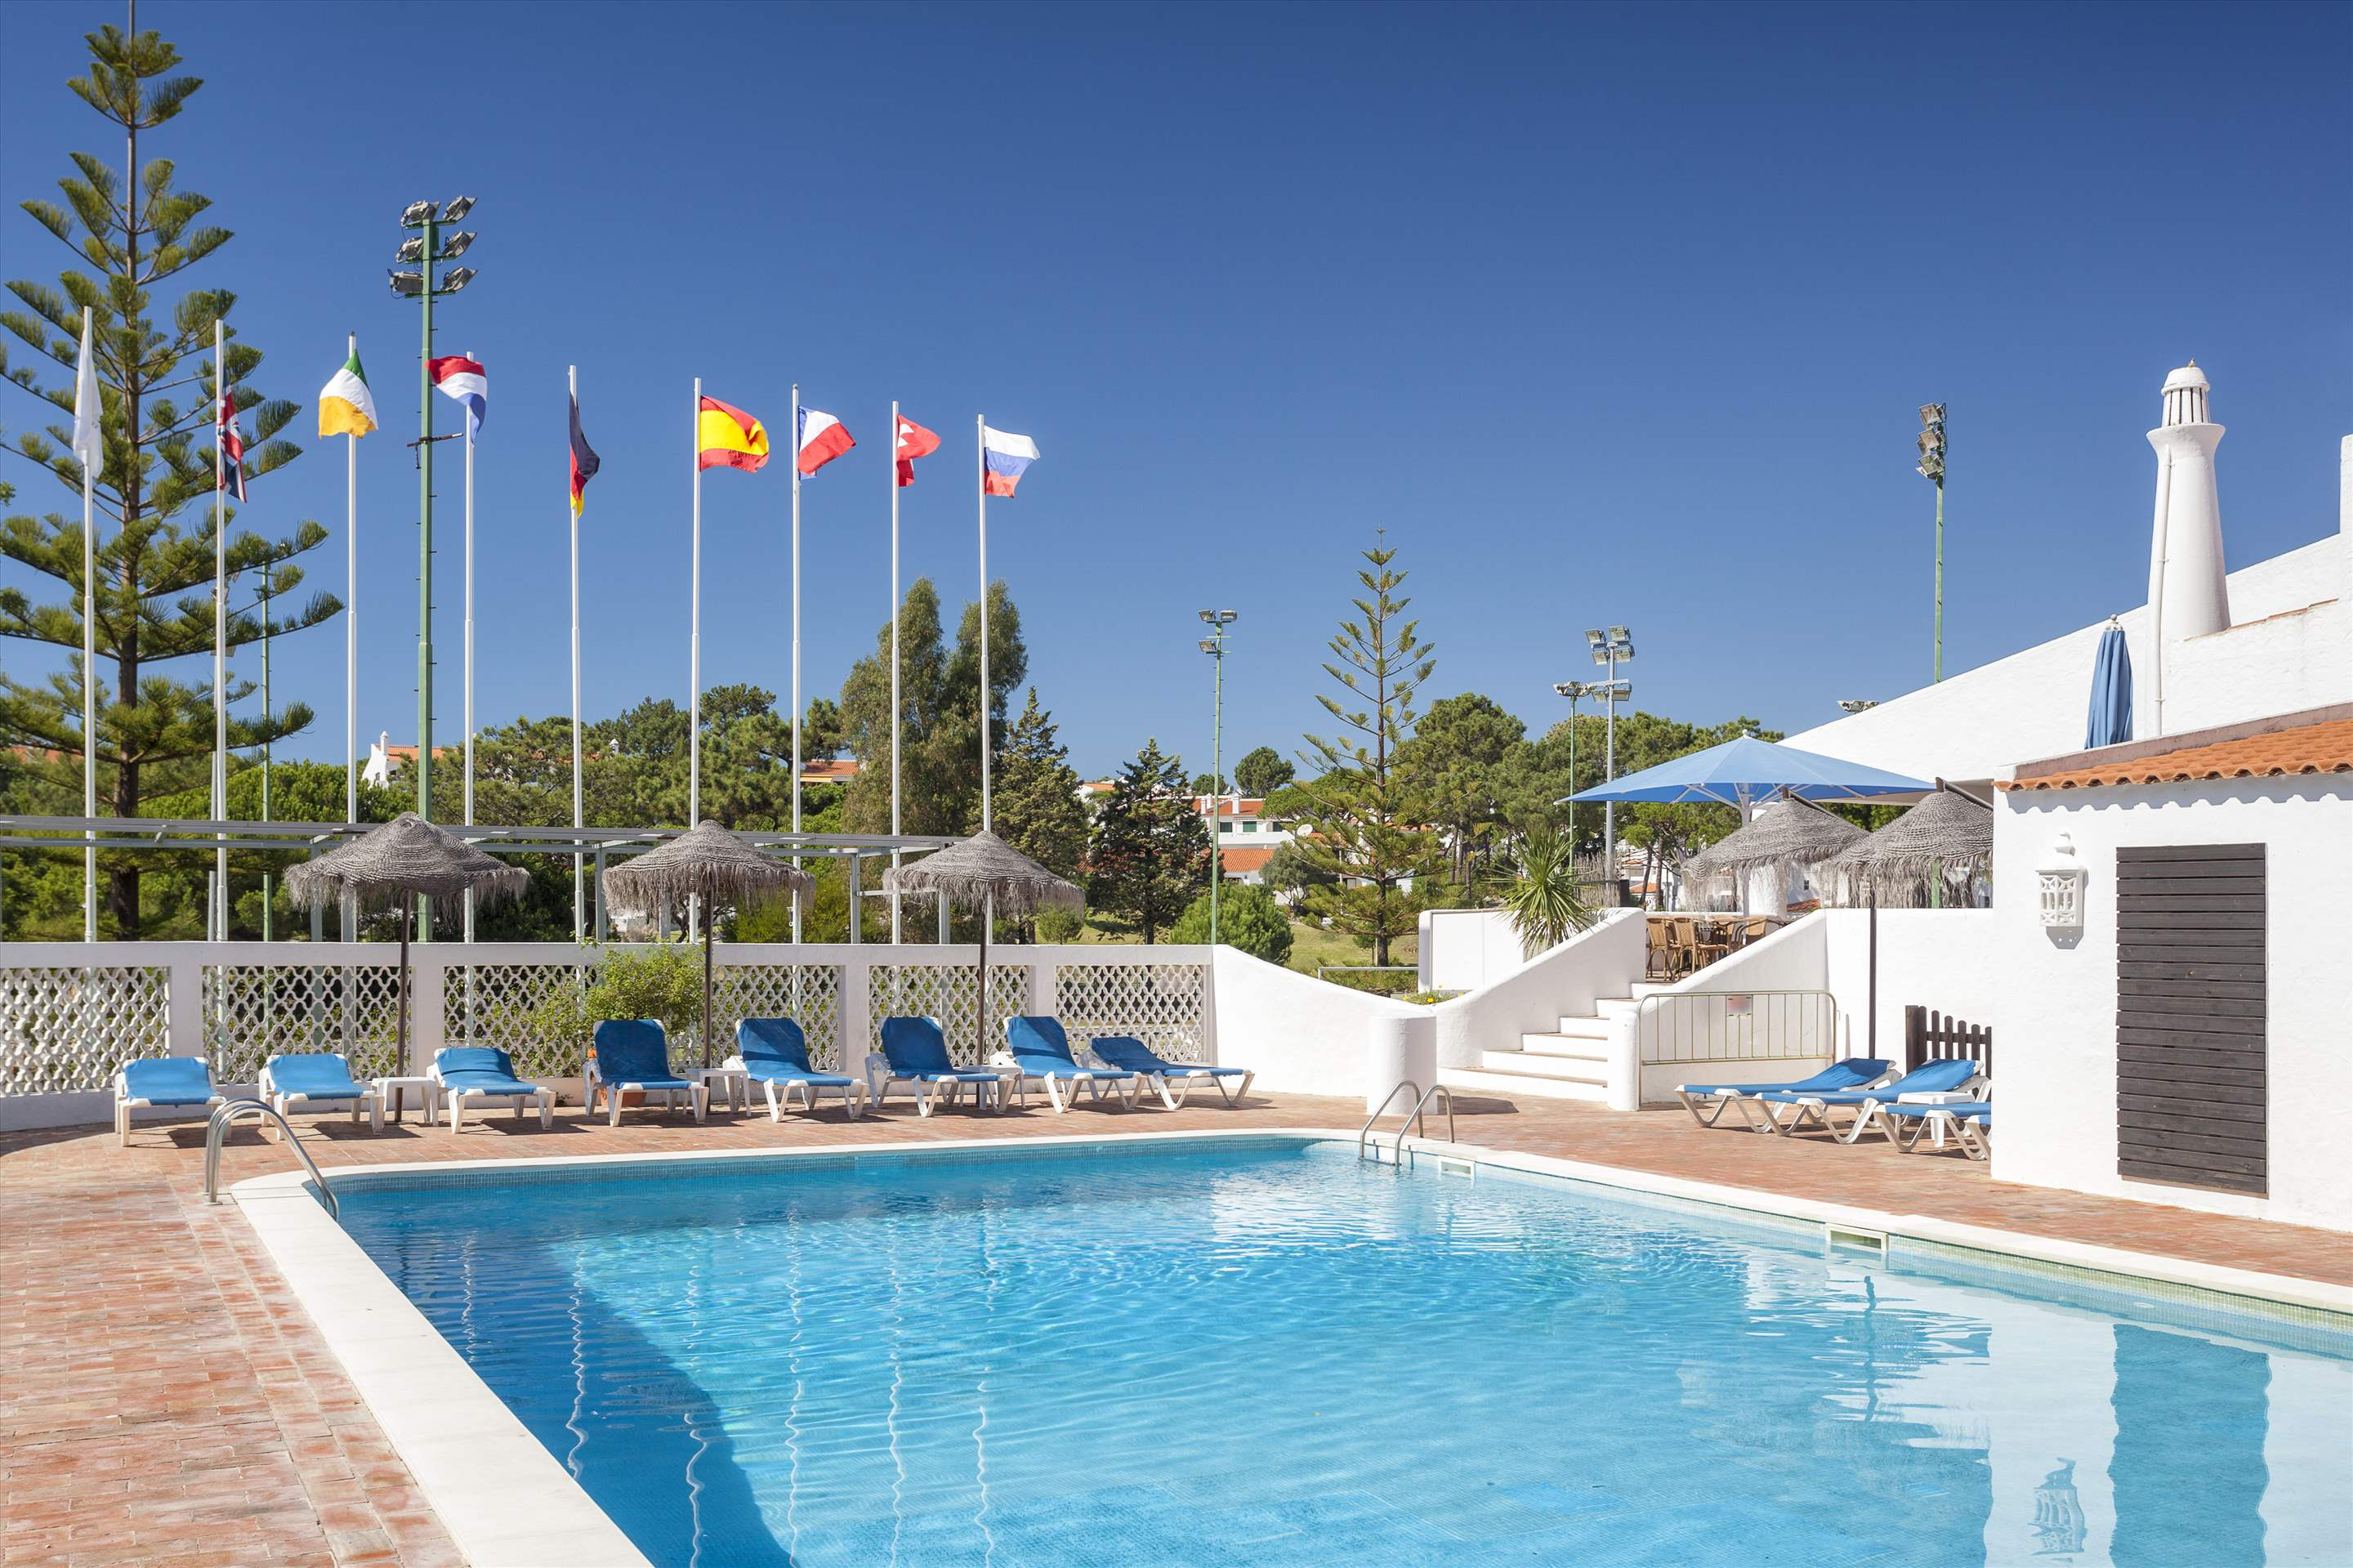 Apartment Jacinda, 2 bedroom apartment in Vale do Lobo, Algarve Photo #19